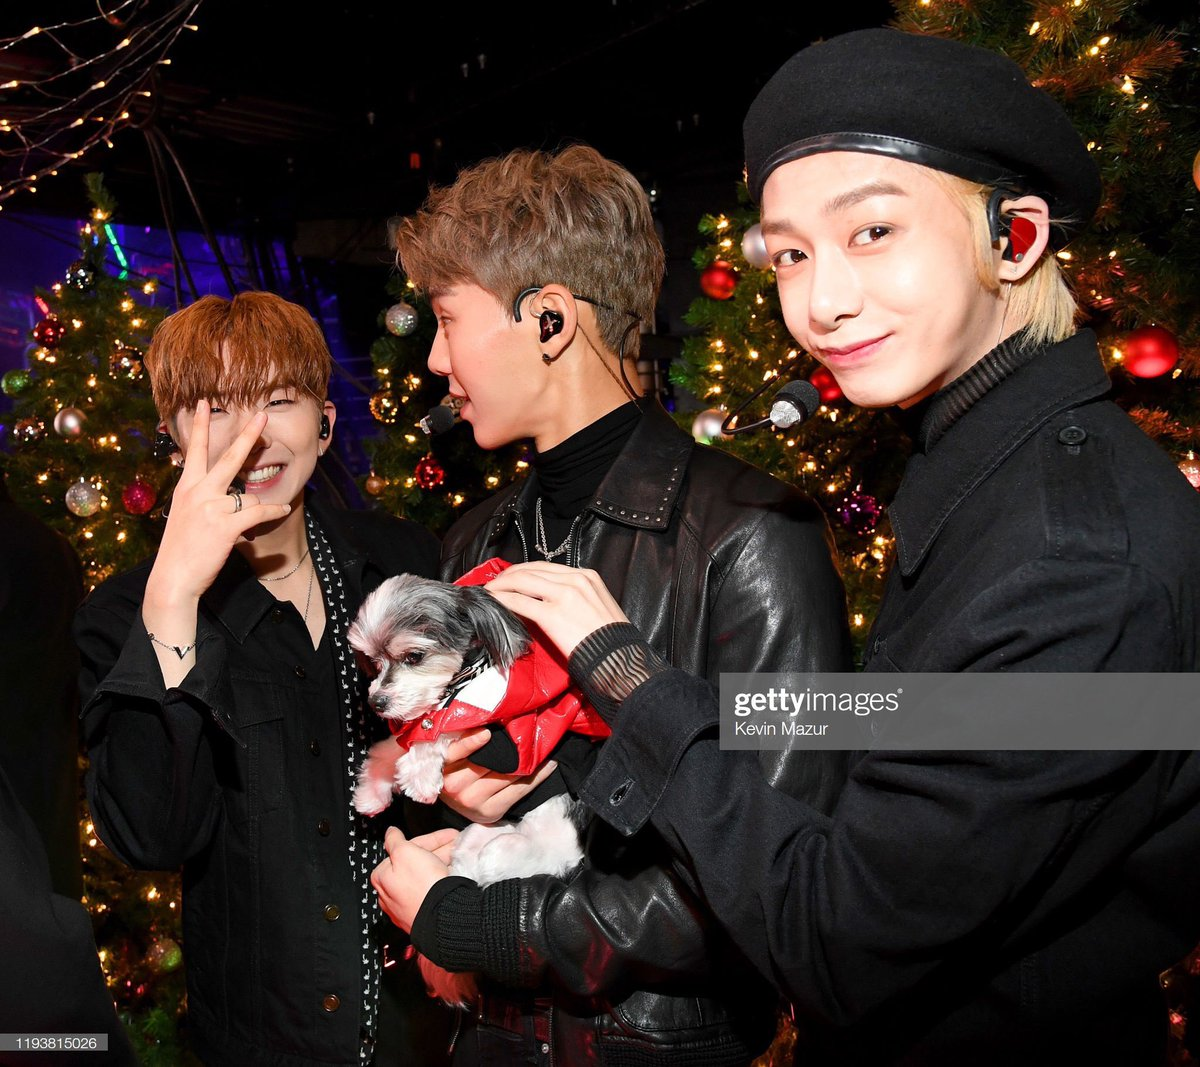 hyungwon smiling menacingly at the camera before he steals the dog <br>http://pic.twitter.com/8SJXwszB9Q